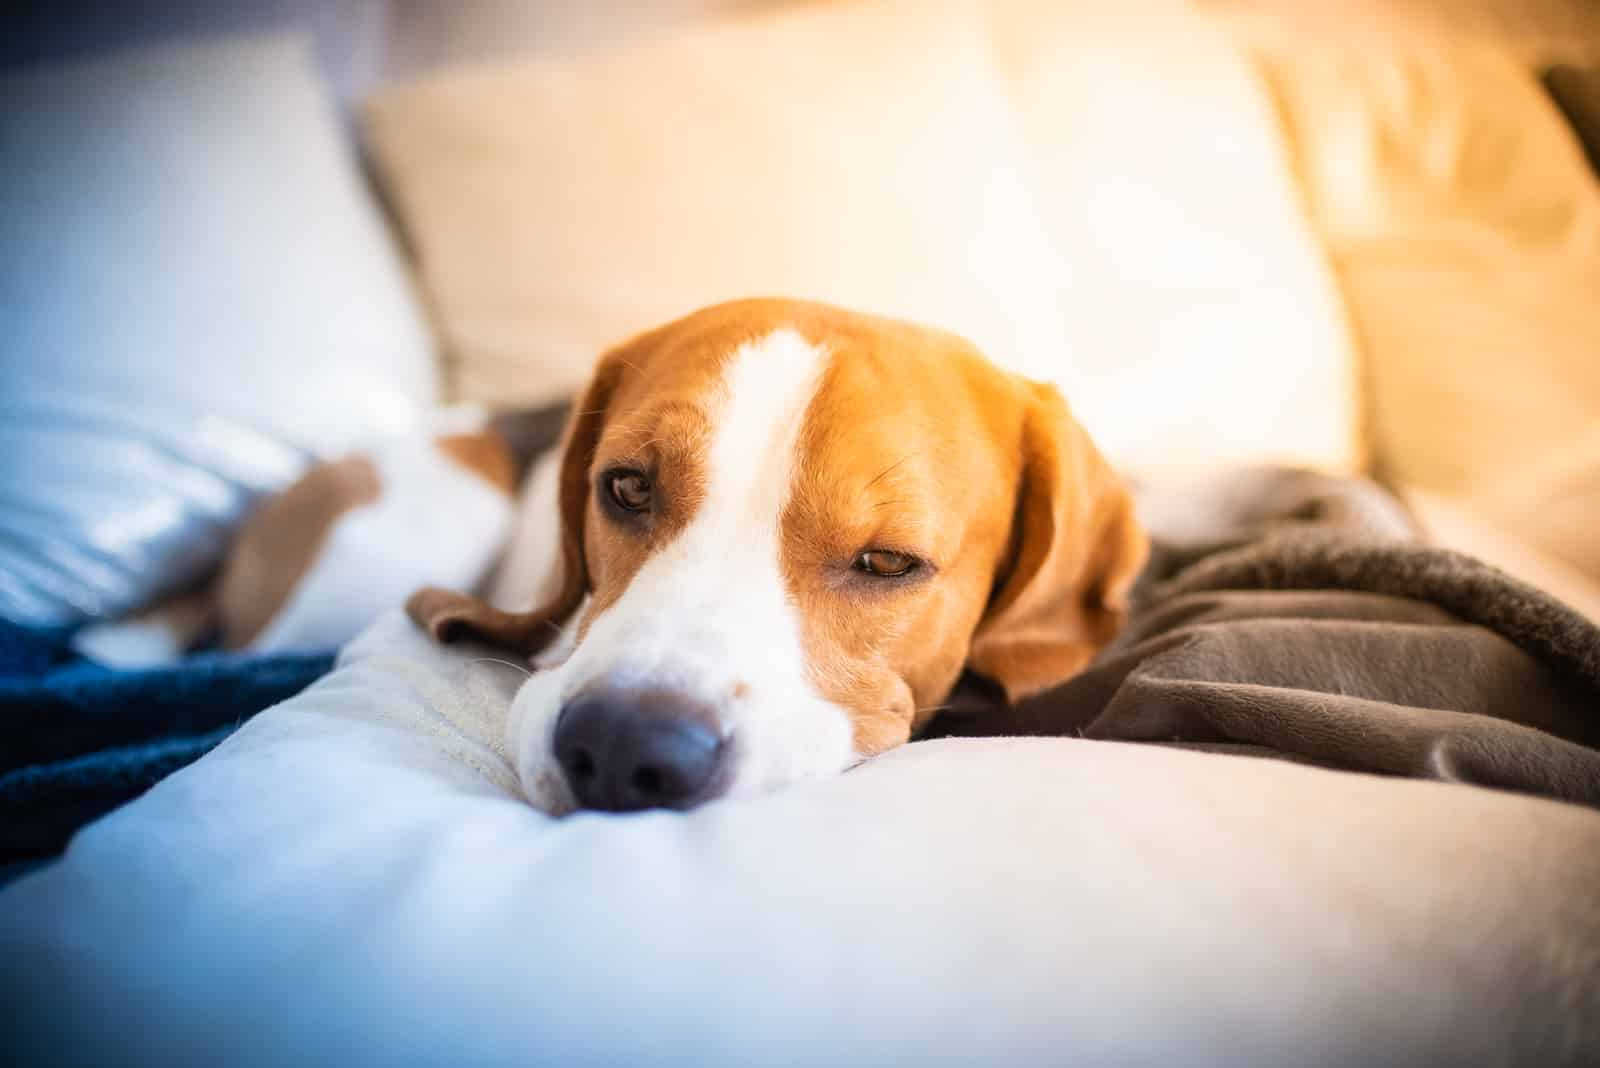 do dogs get sad when you leave them?